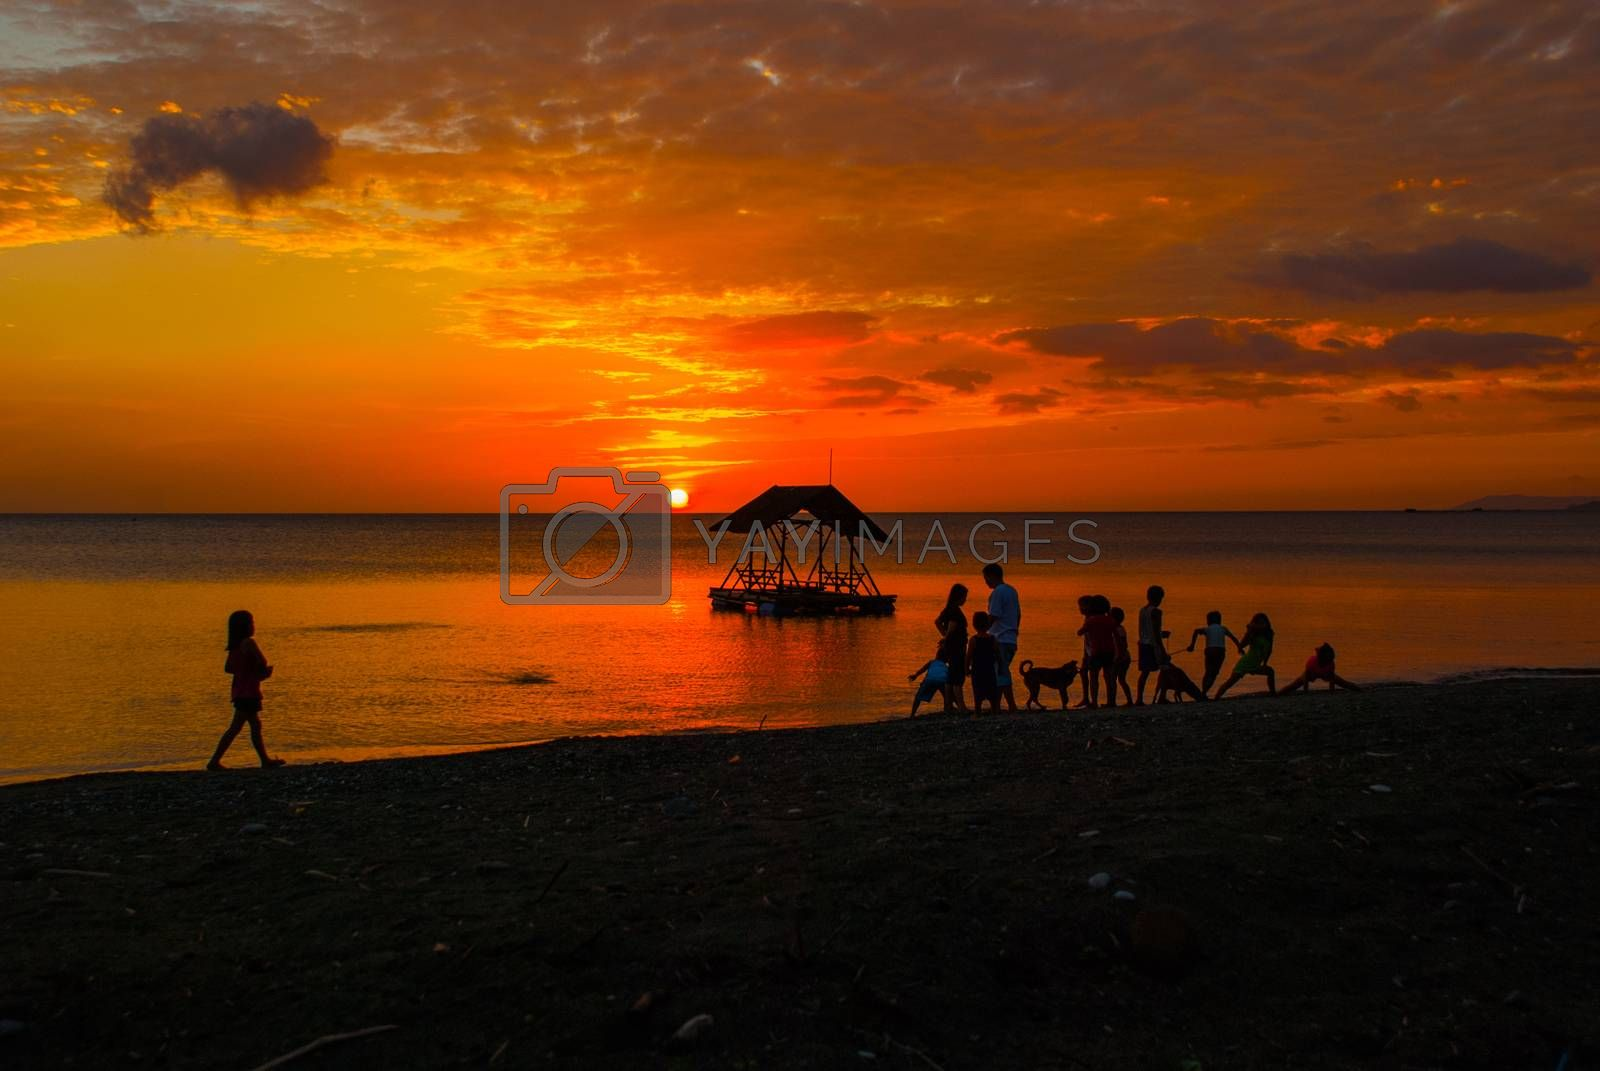 Beautiful sunset on the beach. Silhouettes of pavilions and people. Pandan, Panay island, Philippines